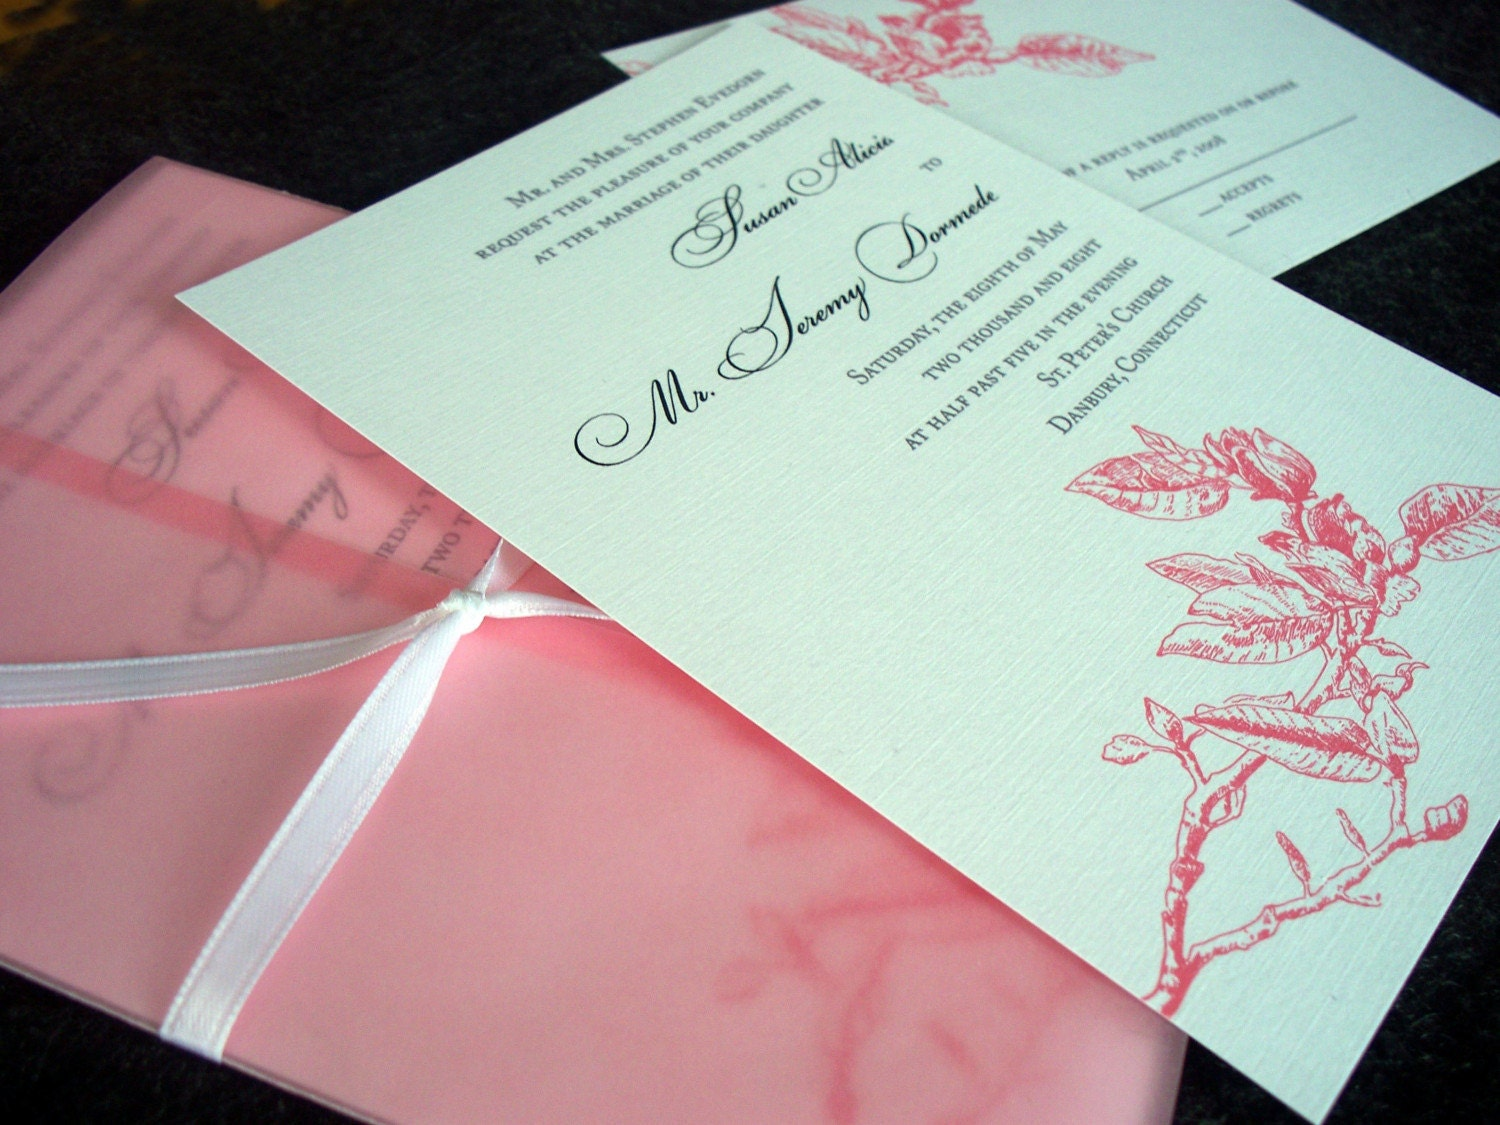 Atlanta Wedding Invitations: Magnolia Wedding Invitation Sample Atlanta By Tulaloo On Etsy